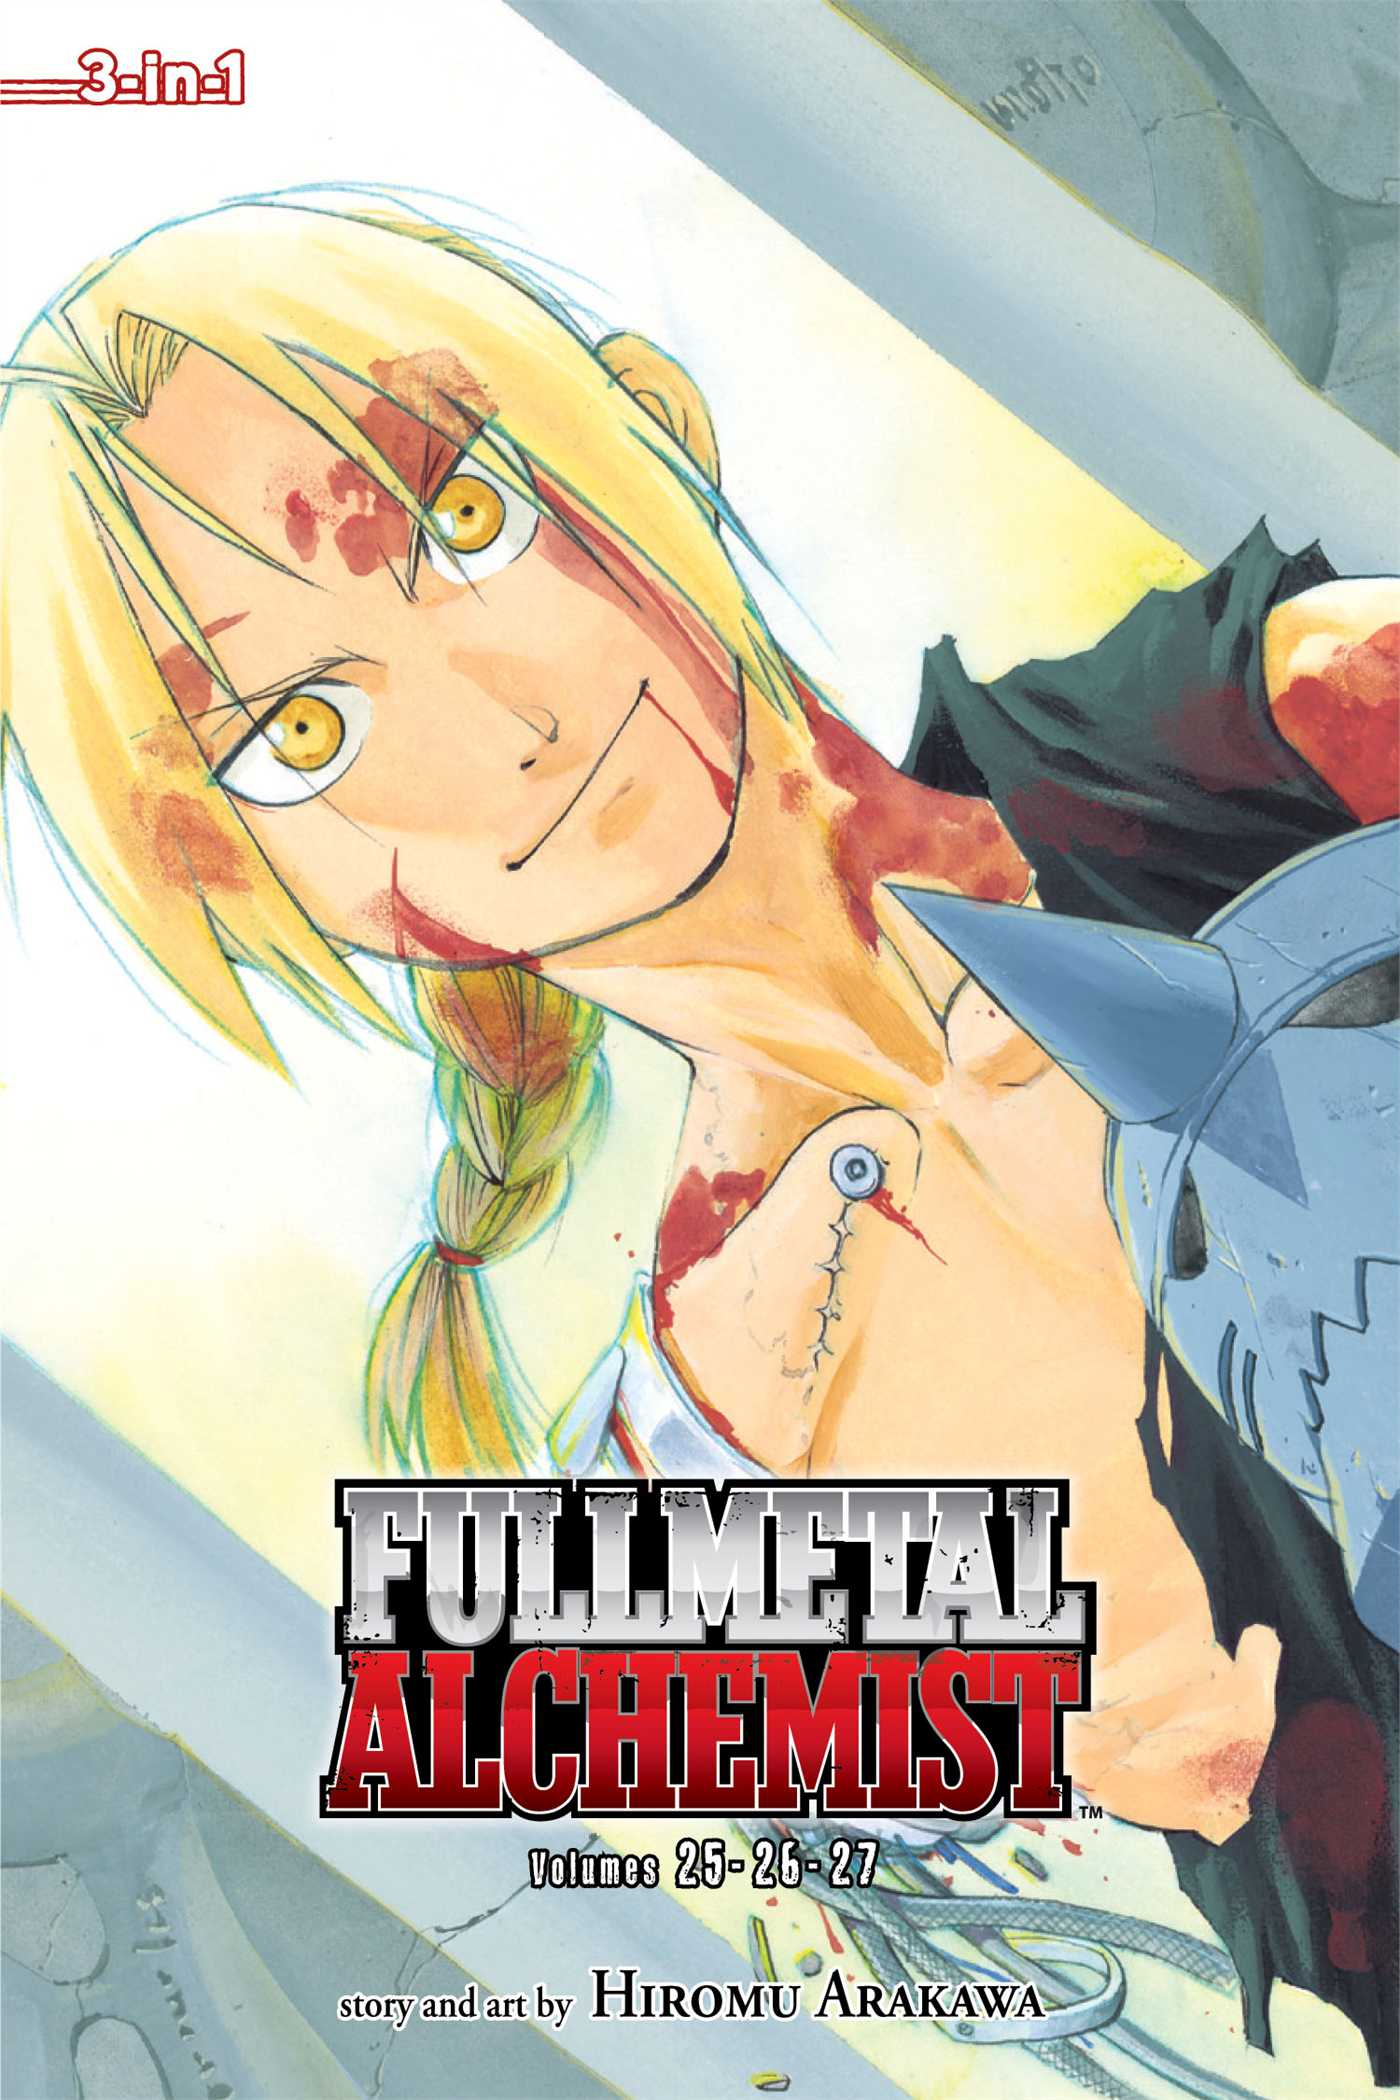 Fullmetal-alchemist-(3-in-1-edition)-vol-9-9781421554976_hr